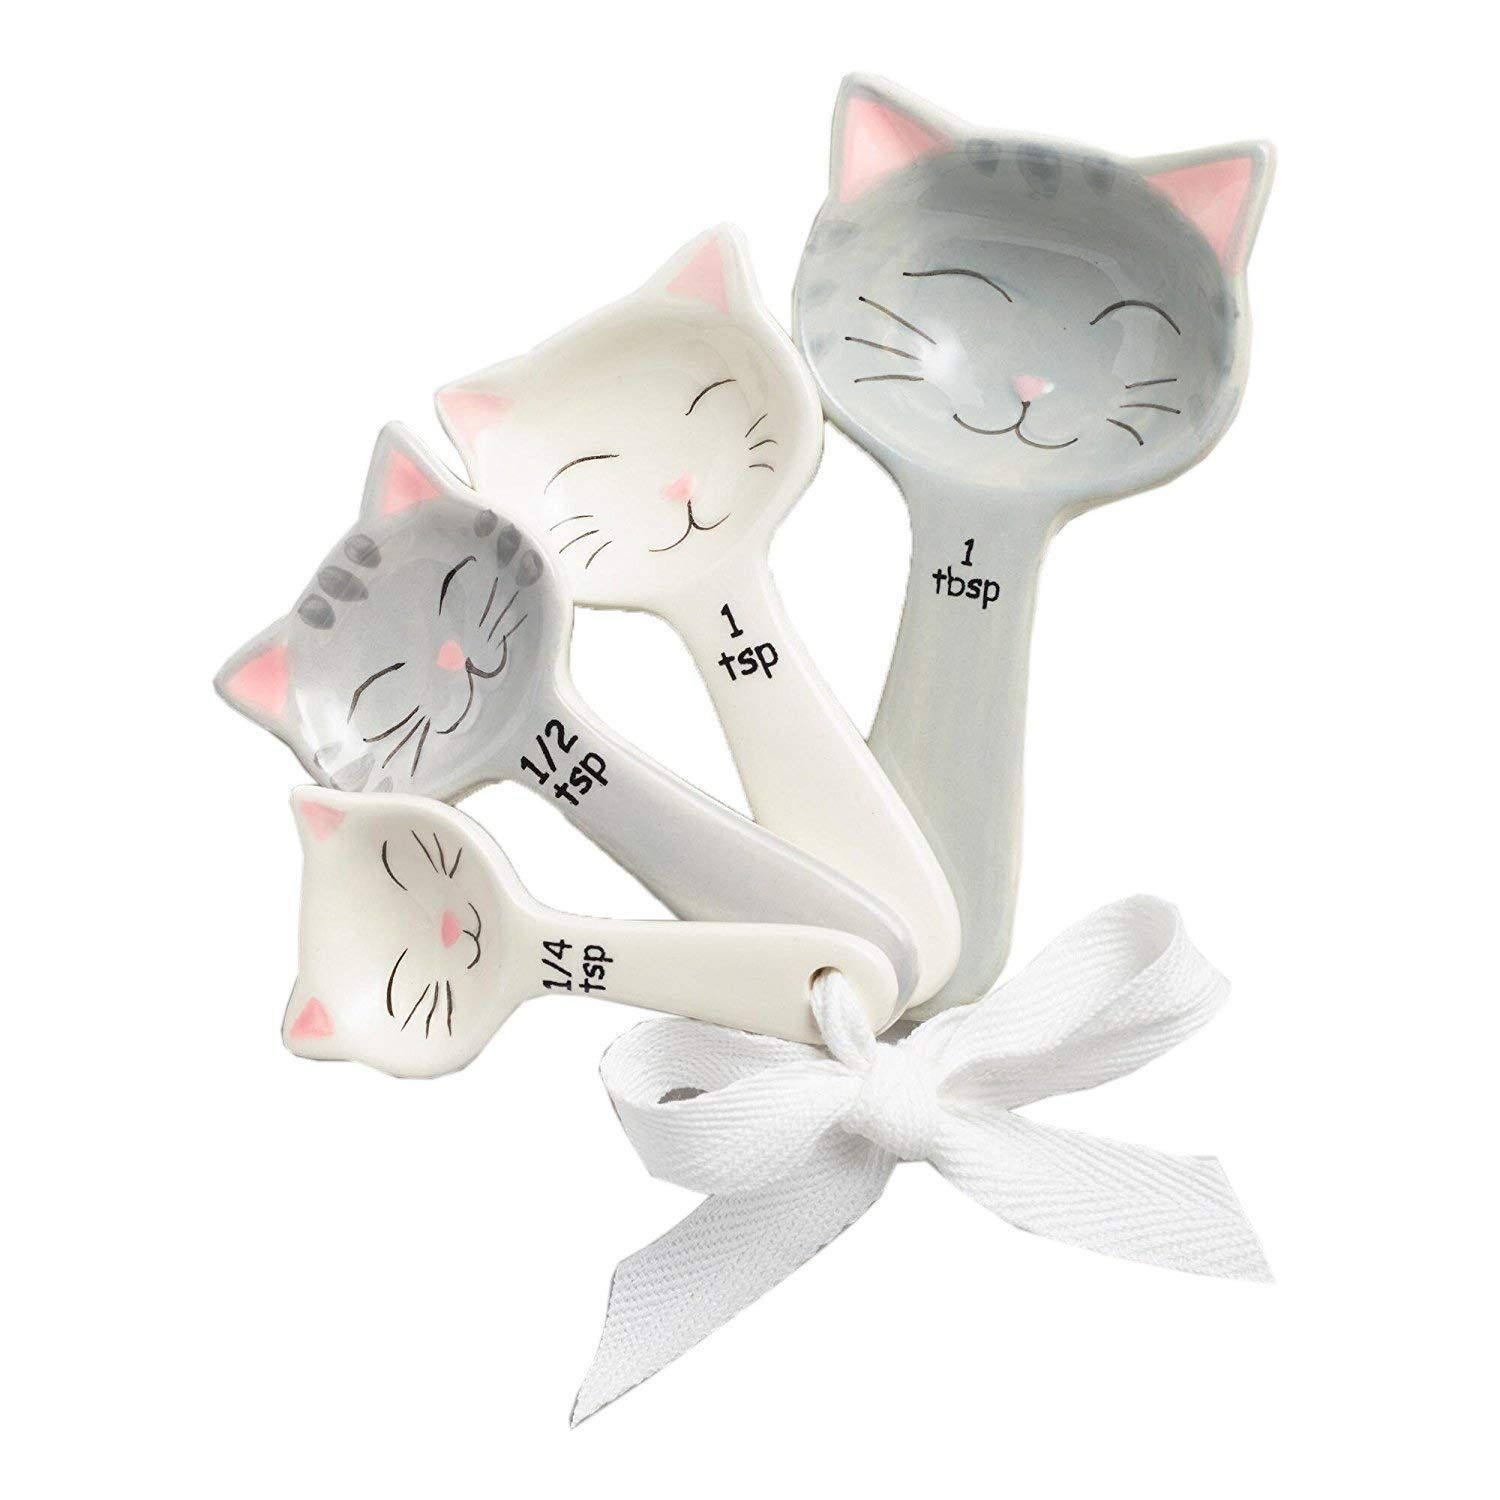 91fa25e21 Purrfect Gift for the Cat Lover! Cat Shaped Ceramic Measuring Spoons -  White and Gray